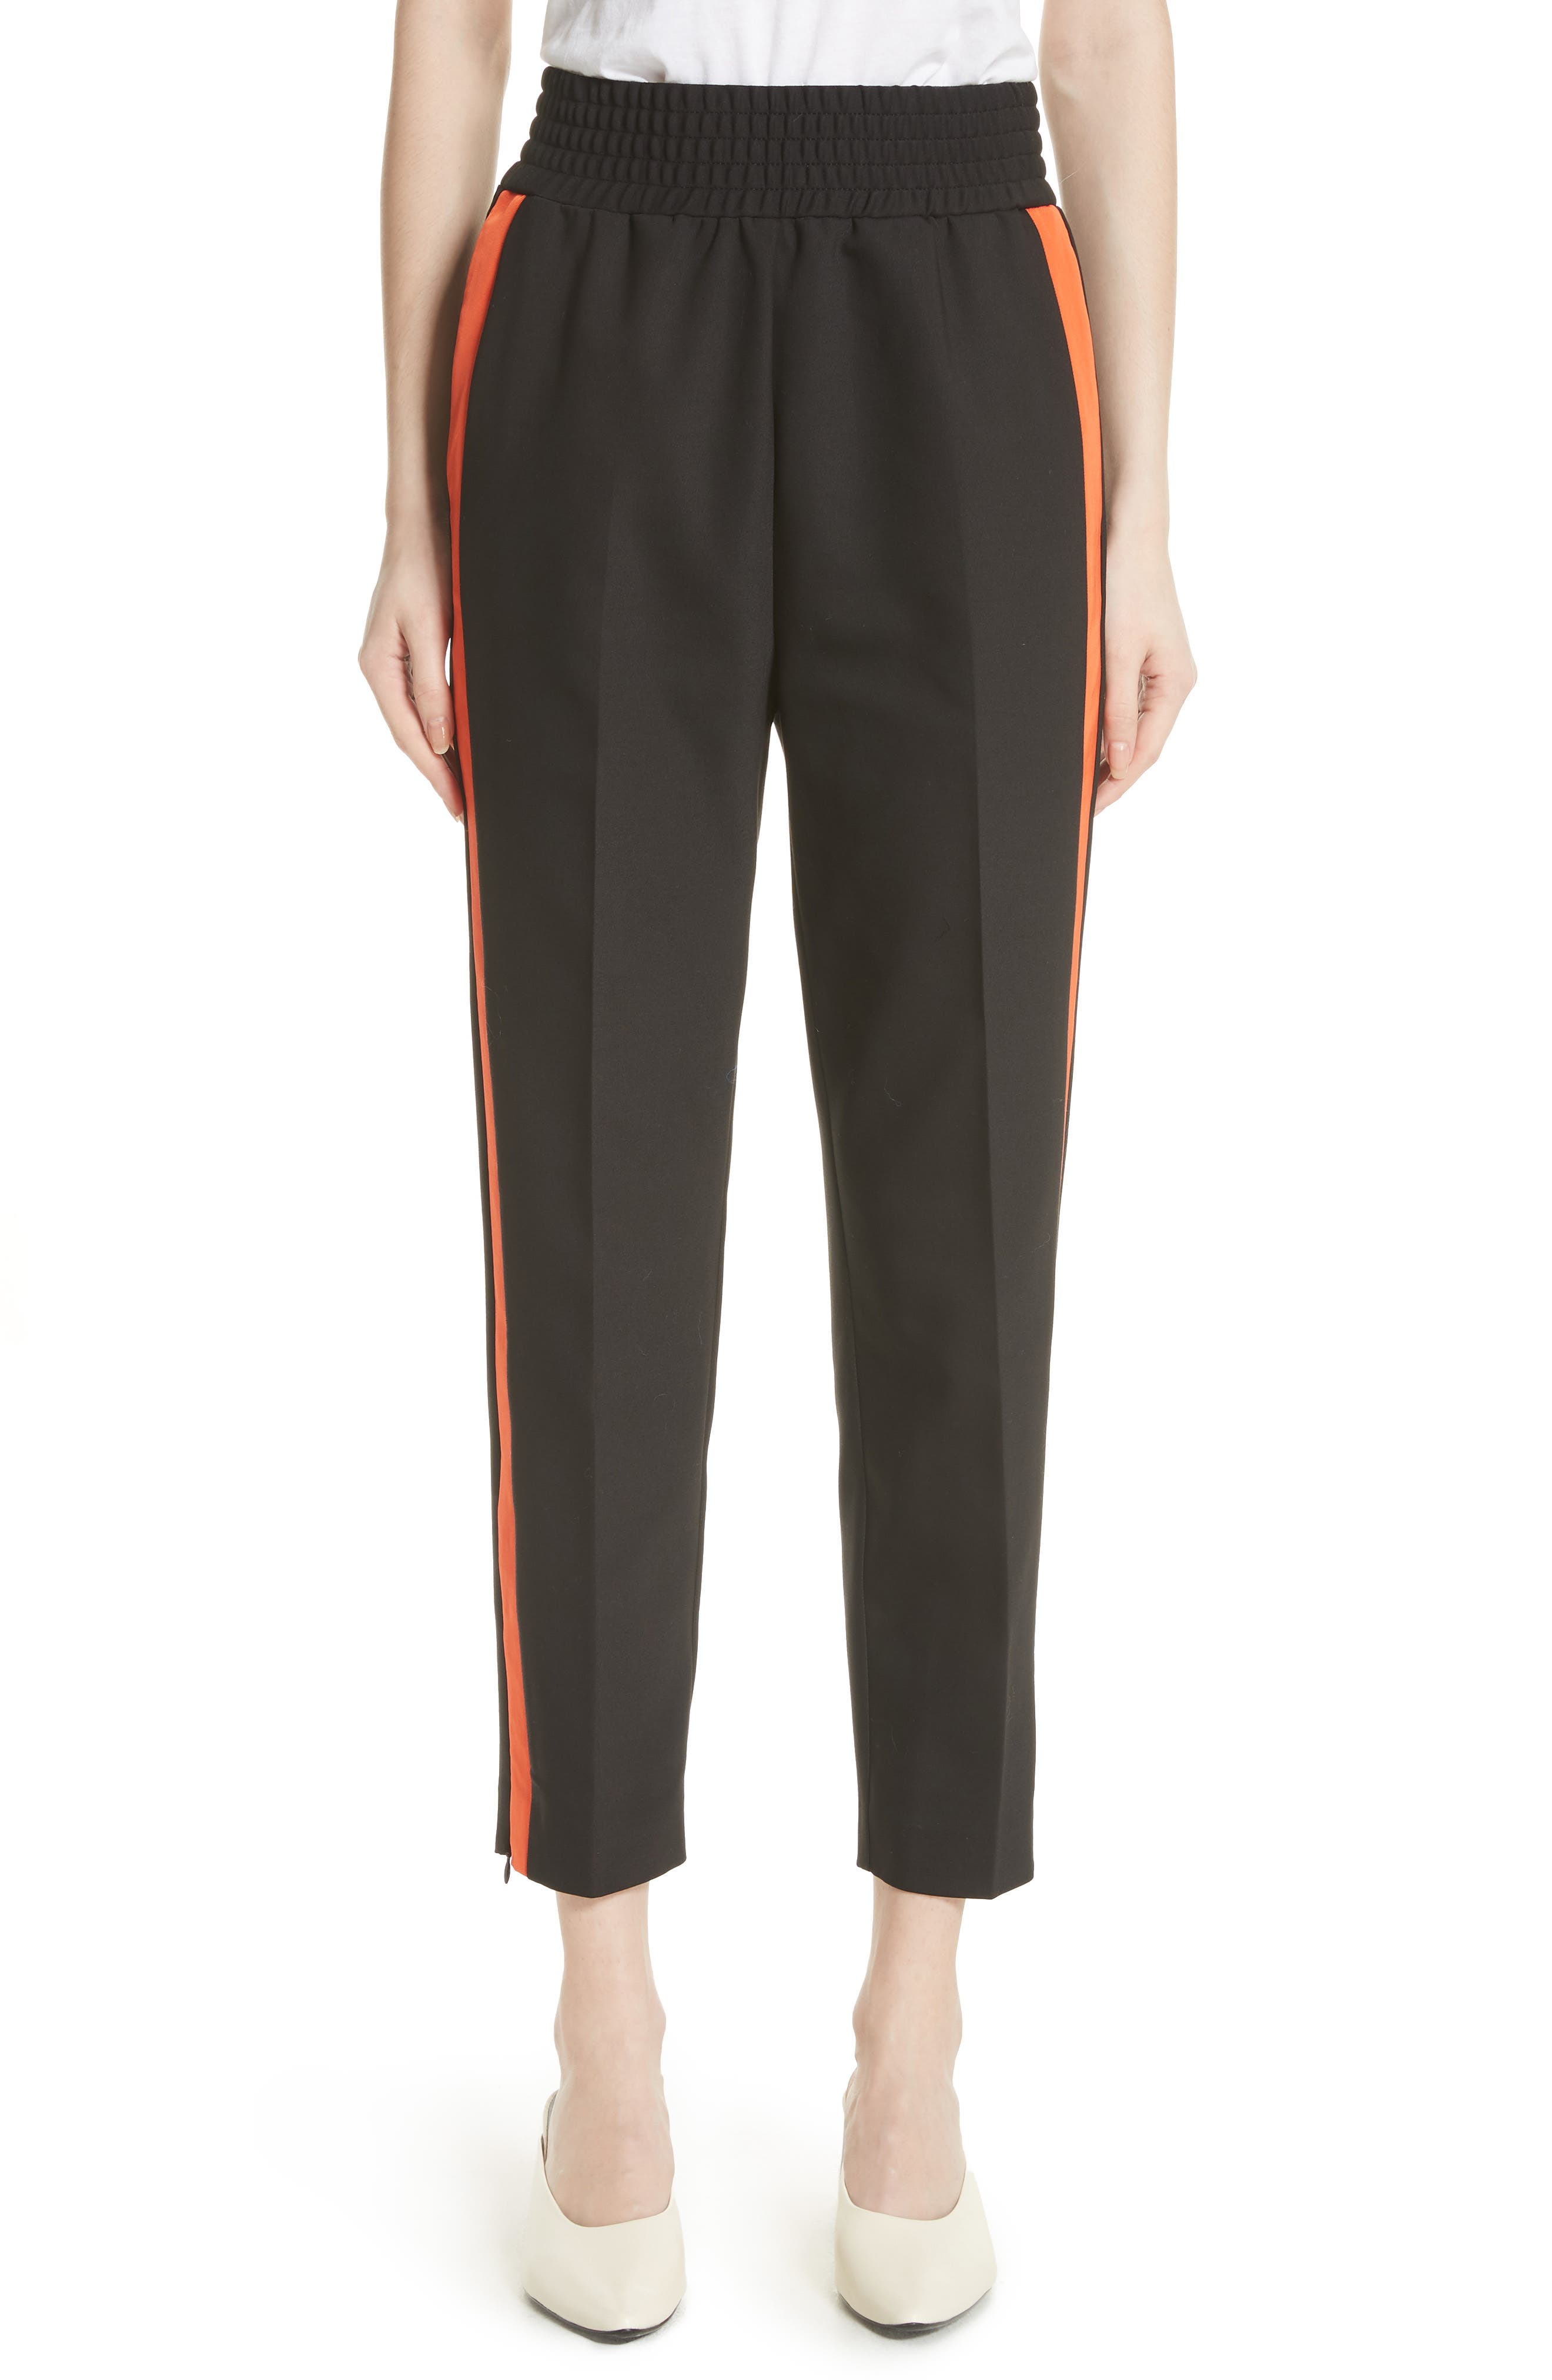 Pensee Track Pants,                         Main,                         color, 001